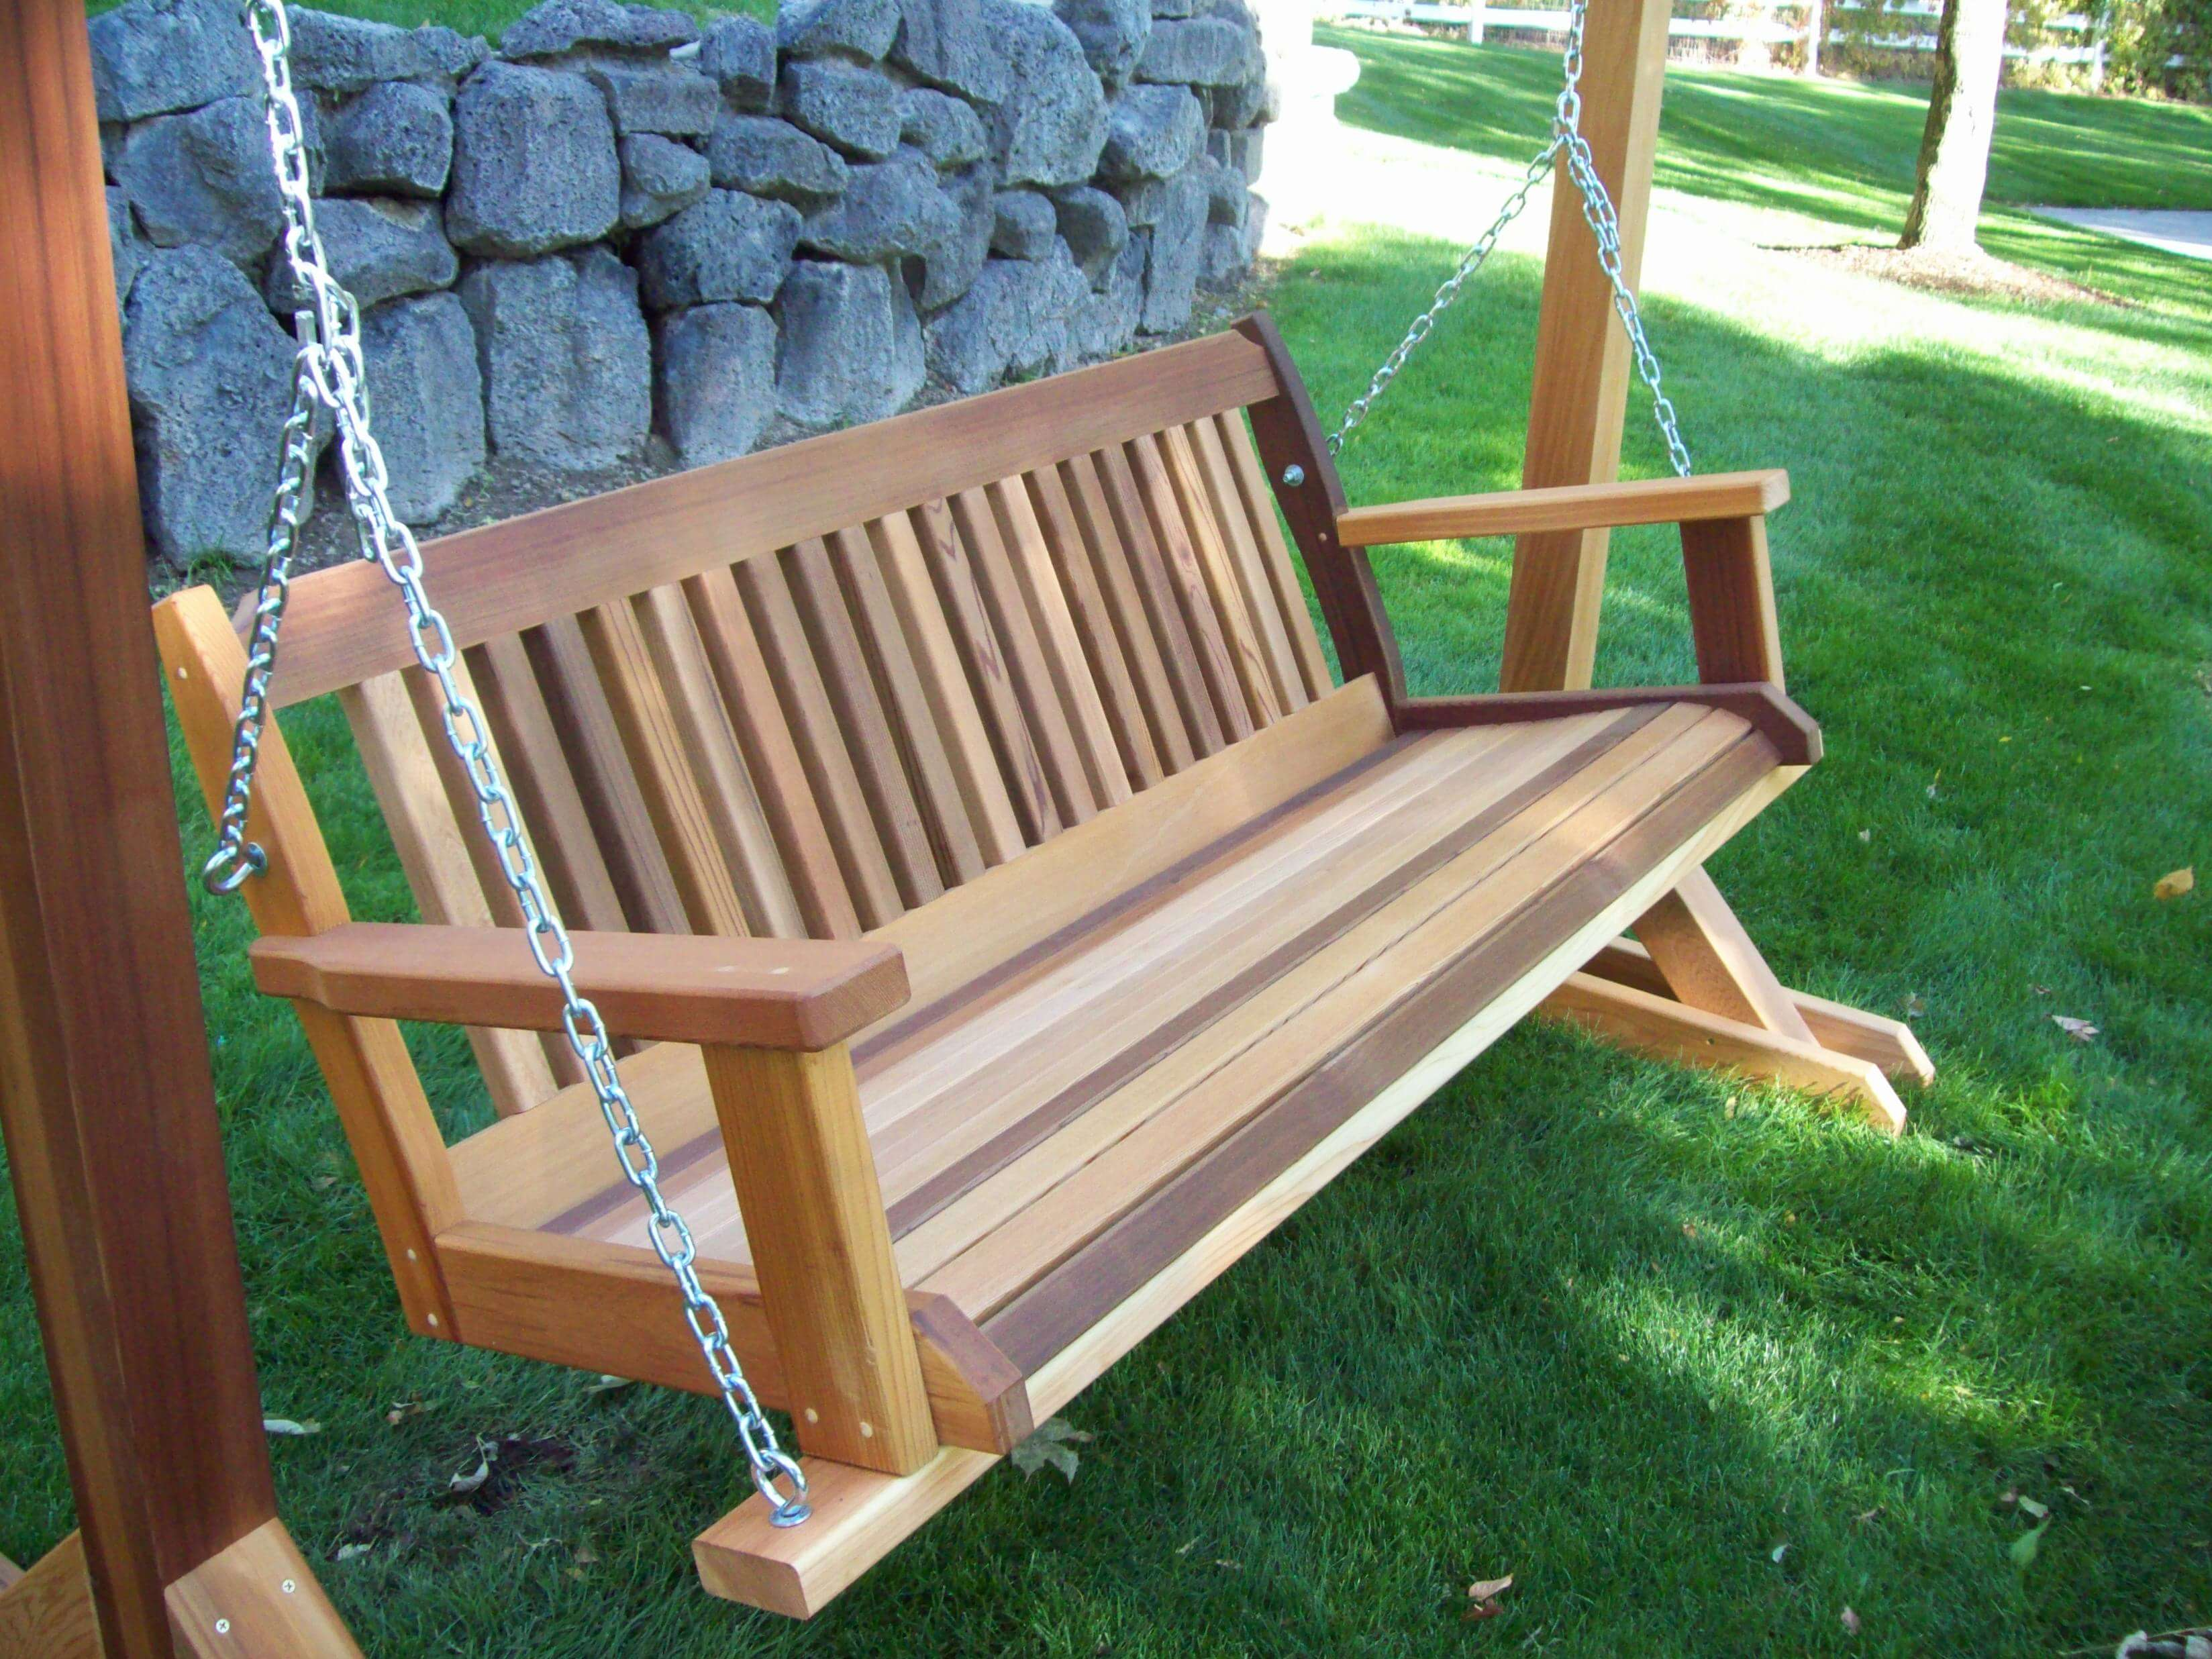 Best Porch Swing Reviews & Guide  The Hammock Expert. Aluminum Patio Furniture Ontario. Patio Furniture Woodstock Ga. Vintage Wrought Iron Patio Furniture For Sale. Outdoor Furniture With Price. Outdoor Furniture Factory Outlet Perth. Cast Iron Patio Furniture Cleaner. Patio Furniture Repair Raleigh Nc. Rattan Furniture Uk B&q